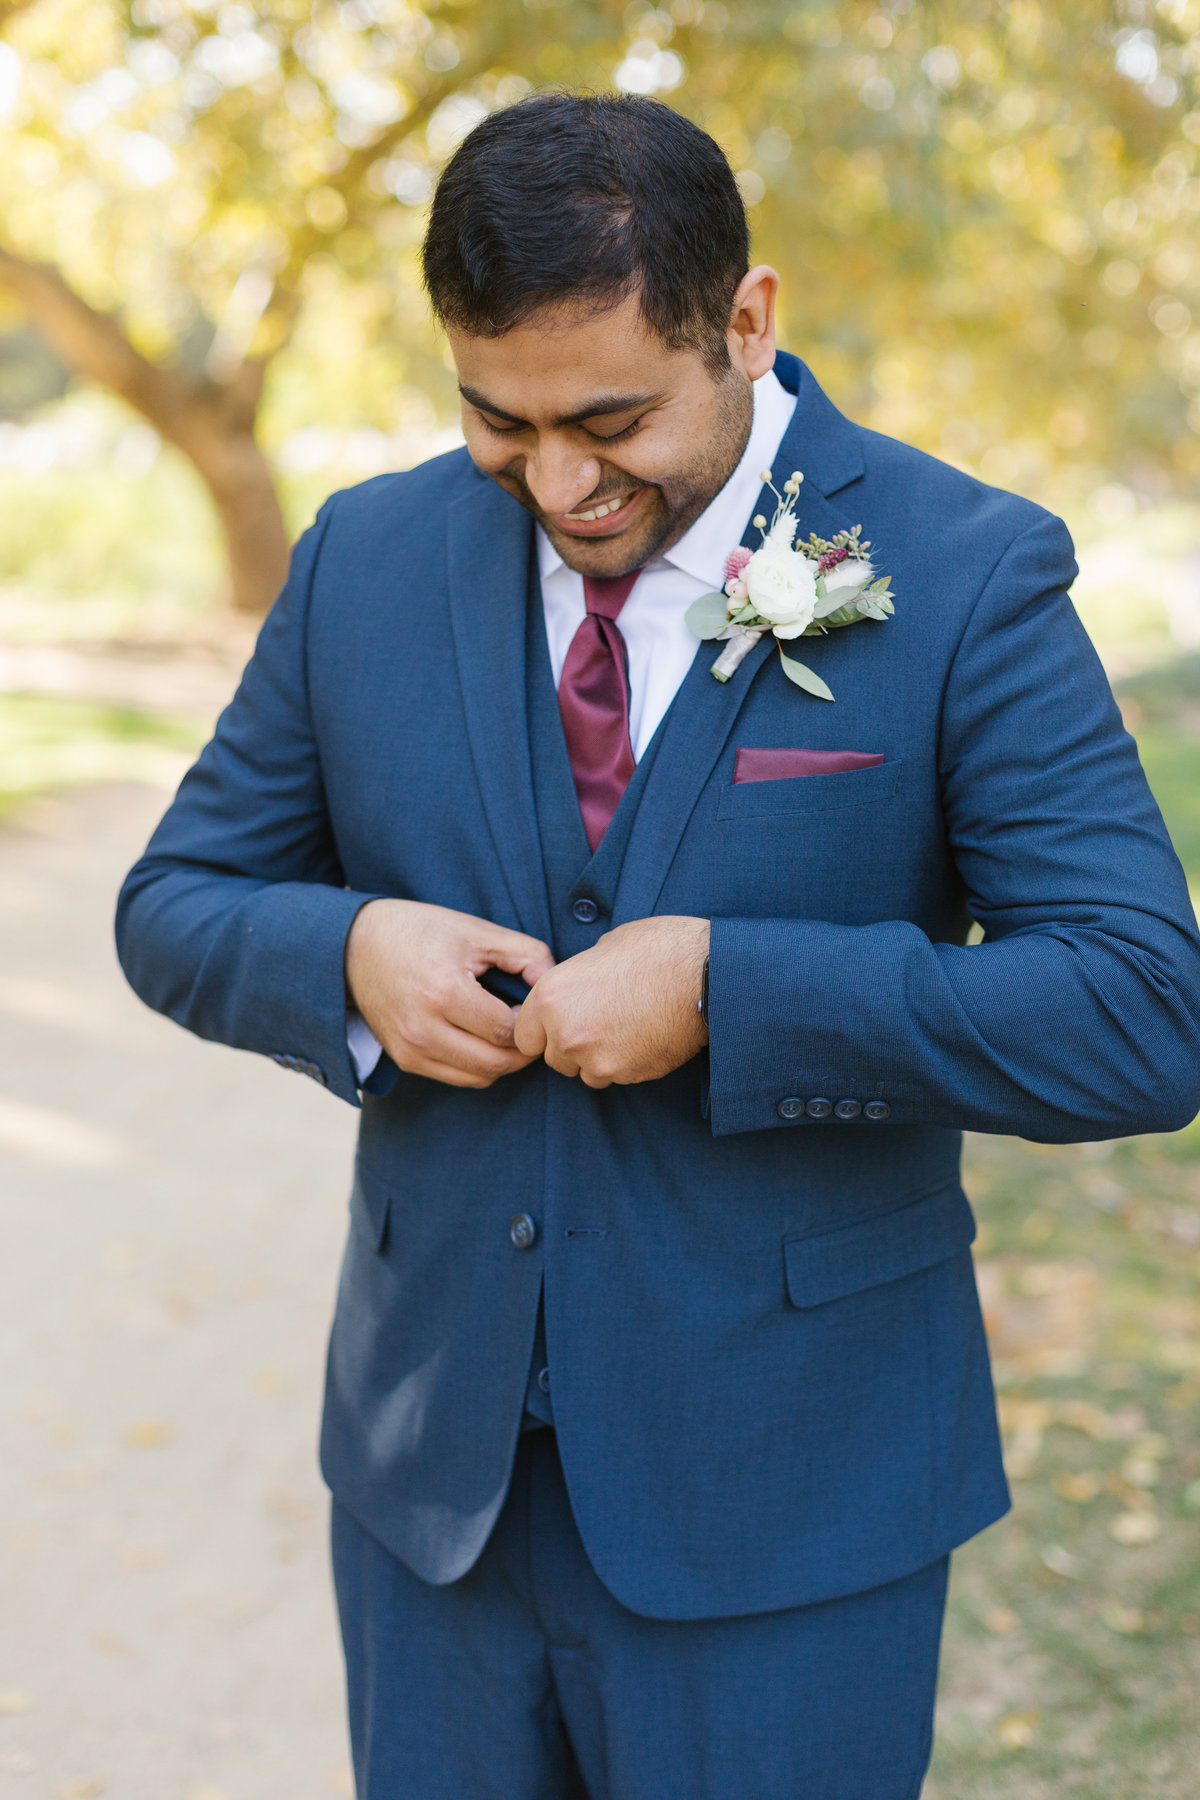 descanso-gardens-fall-wedding-photos-11